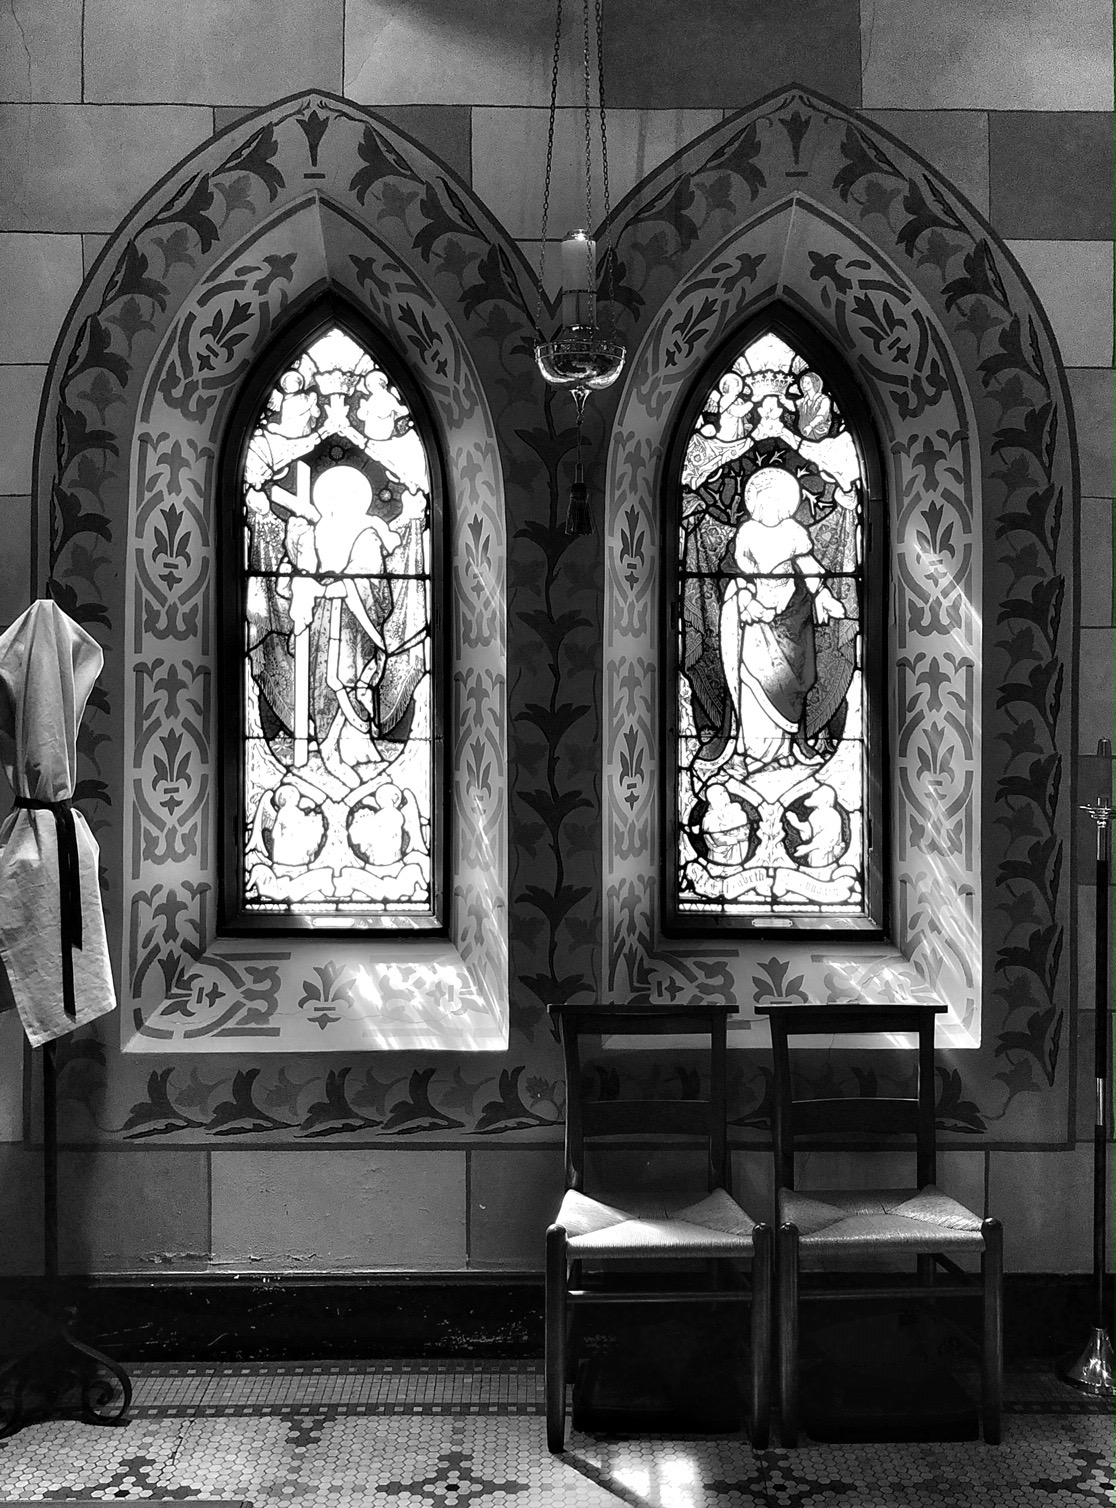 Inside St. John's Episcopal Church at 3009 Greenmount Avenue